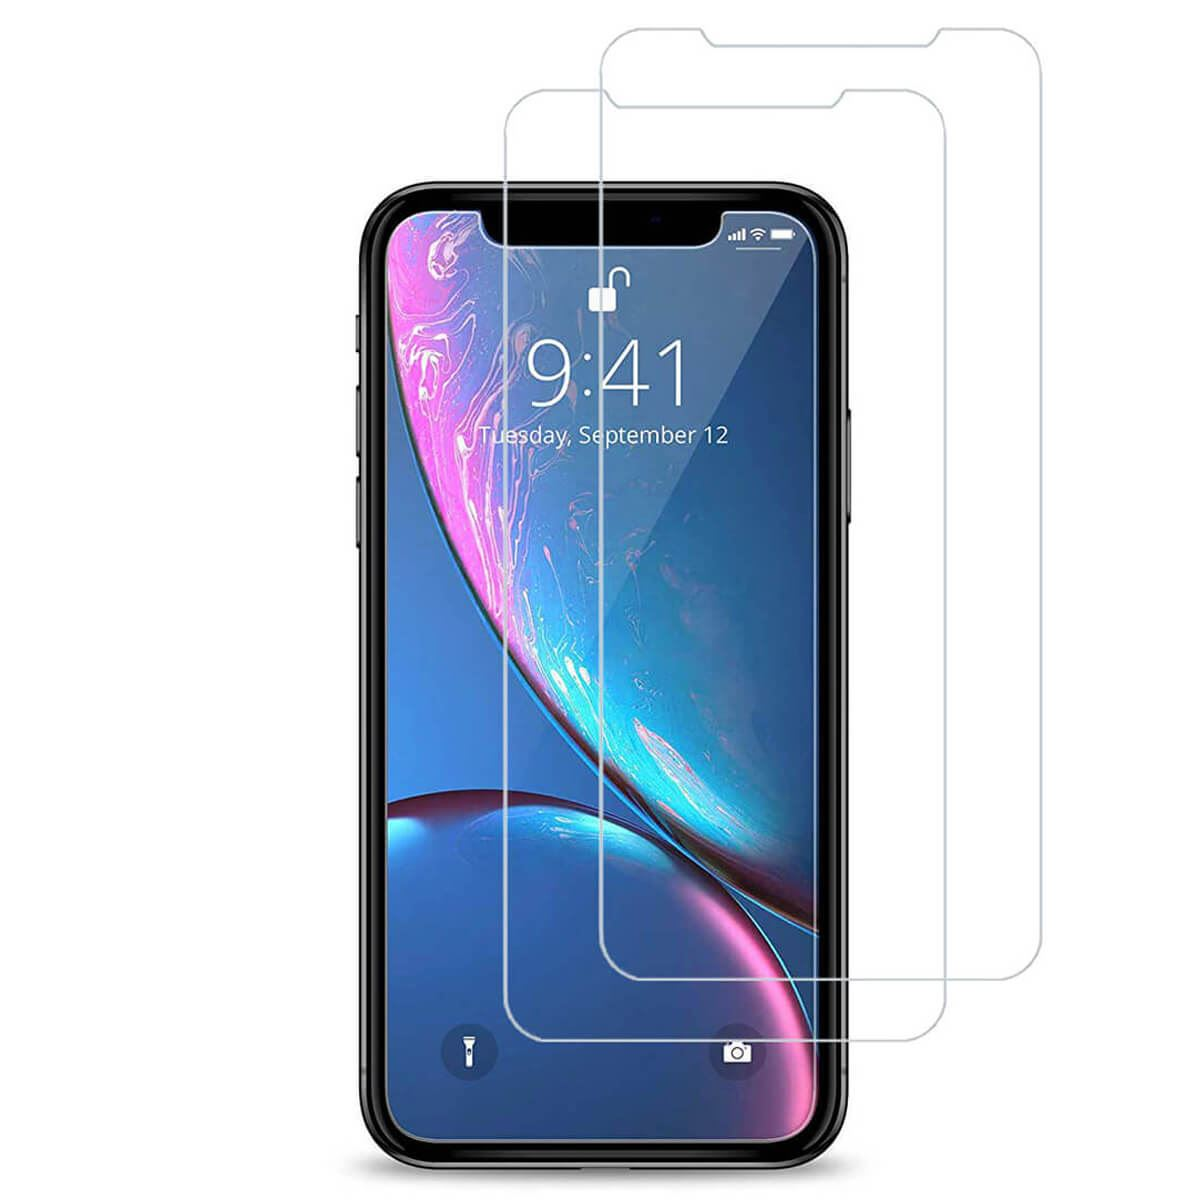 Tempered-Glass-Film-Screen-Protector-For-iPhone-12-Pro-Max-Mini-XR-XS-Max-8-7-6s thumbnail 77